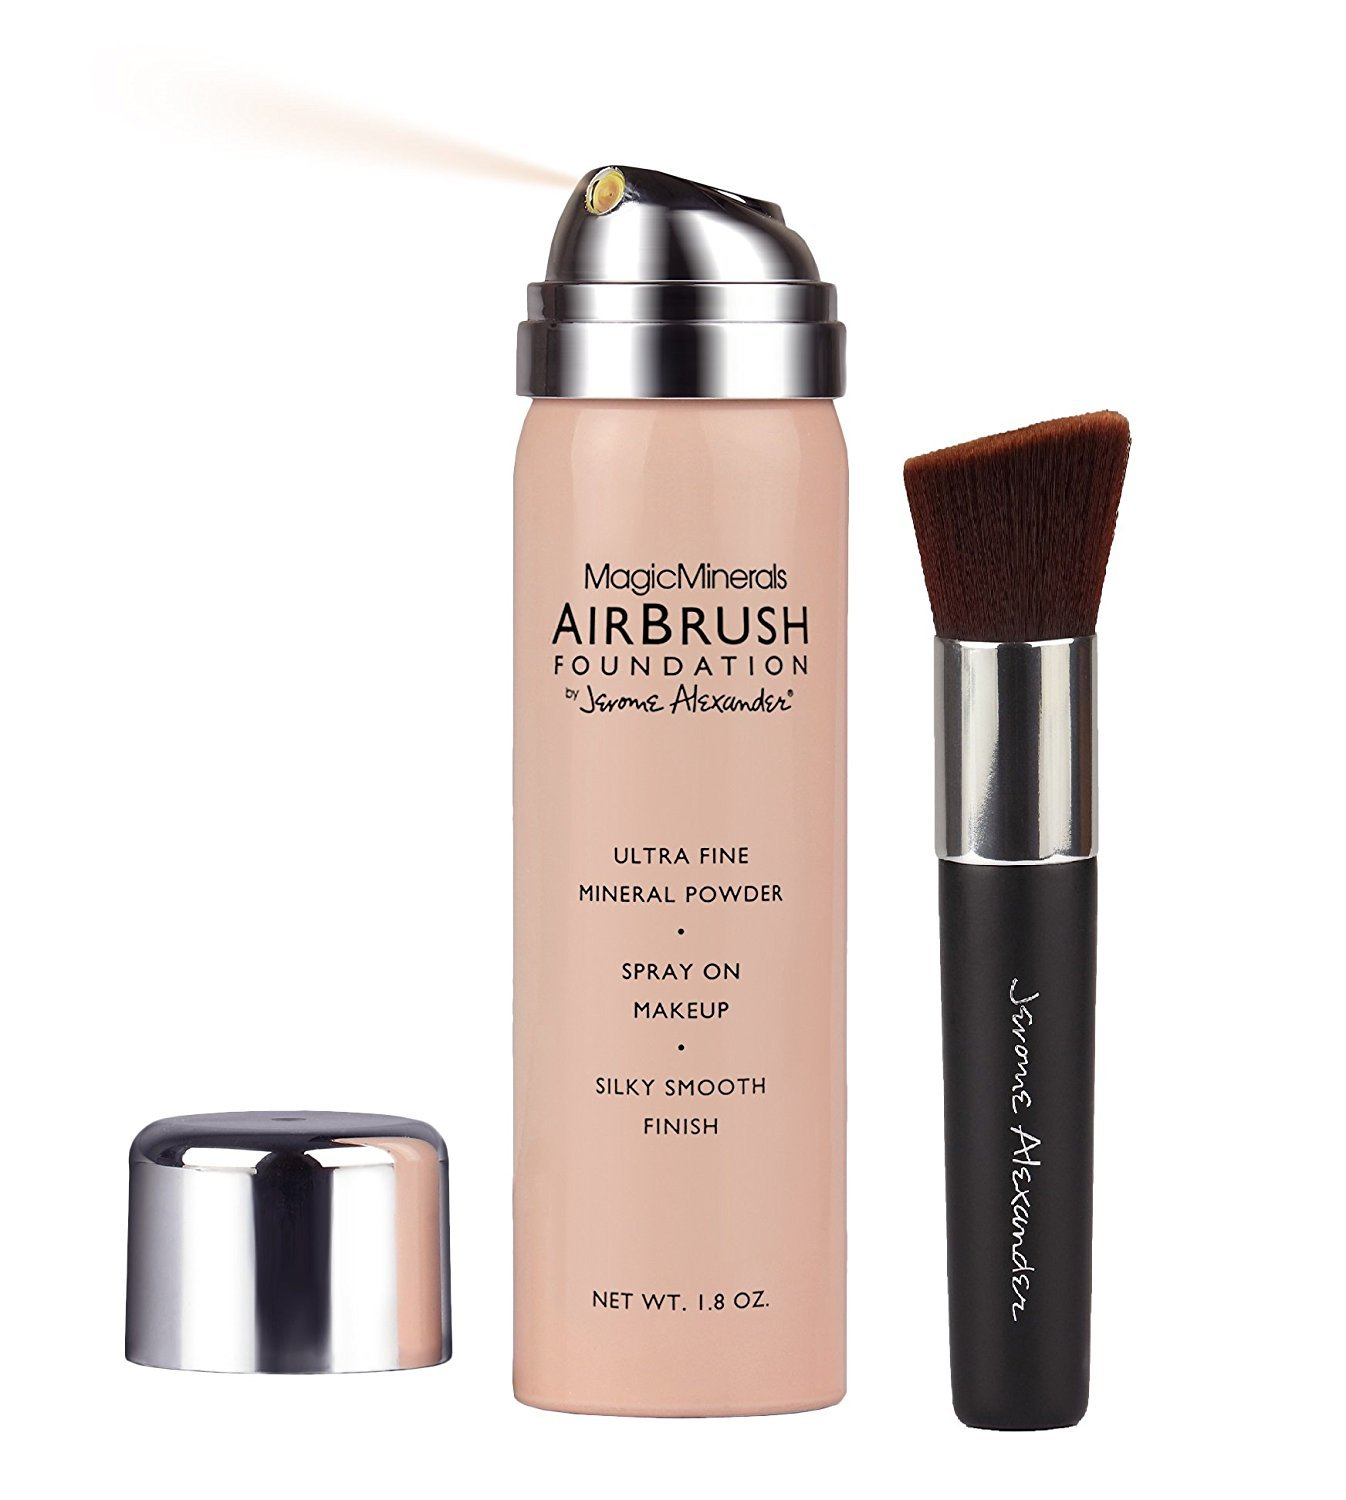 MagicMinerals AirBrush Foundation by Jerome Alexander 2-Piece Makeup Set - Mineral Foundation Spray and Kabuki Brush - Light Medium Shade by Jerome Alexander